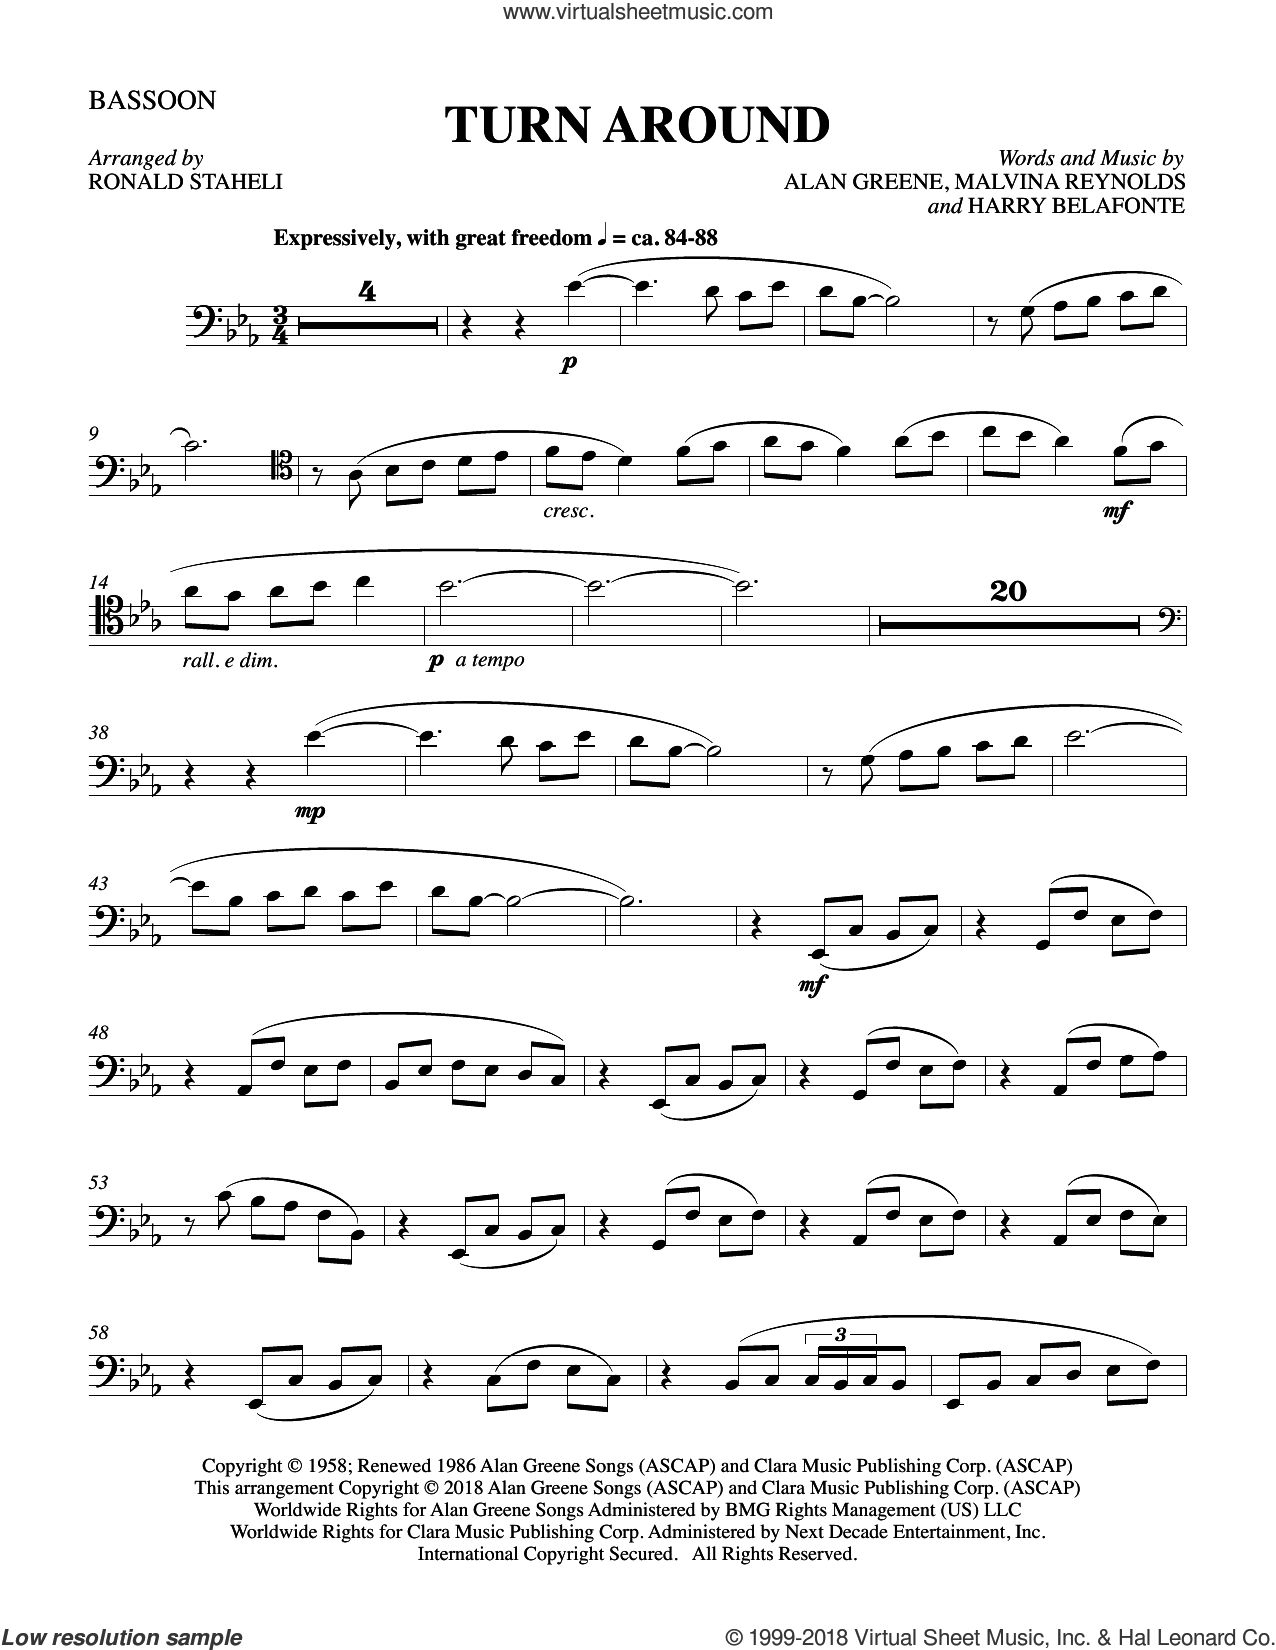 Turn Around (arr. Ronald Staheli) sheet music for orchestra/band (bassoon) by Malvina Reynolds, Harry Belafonte, Sonny & Cher and Alan Greene, intermediate skill level